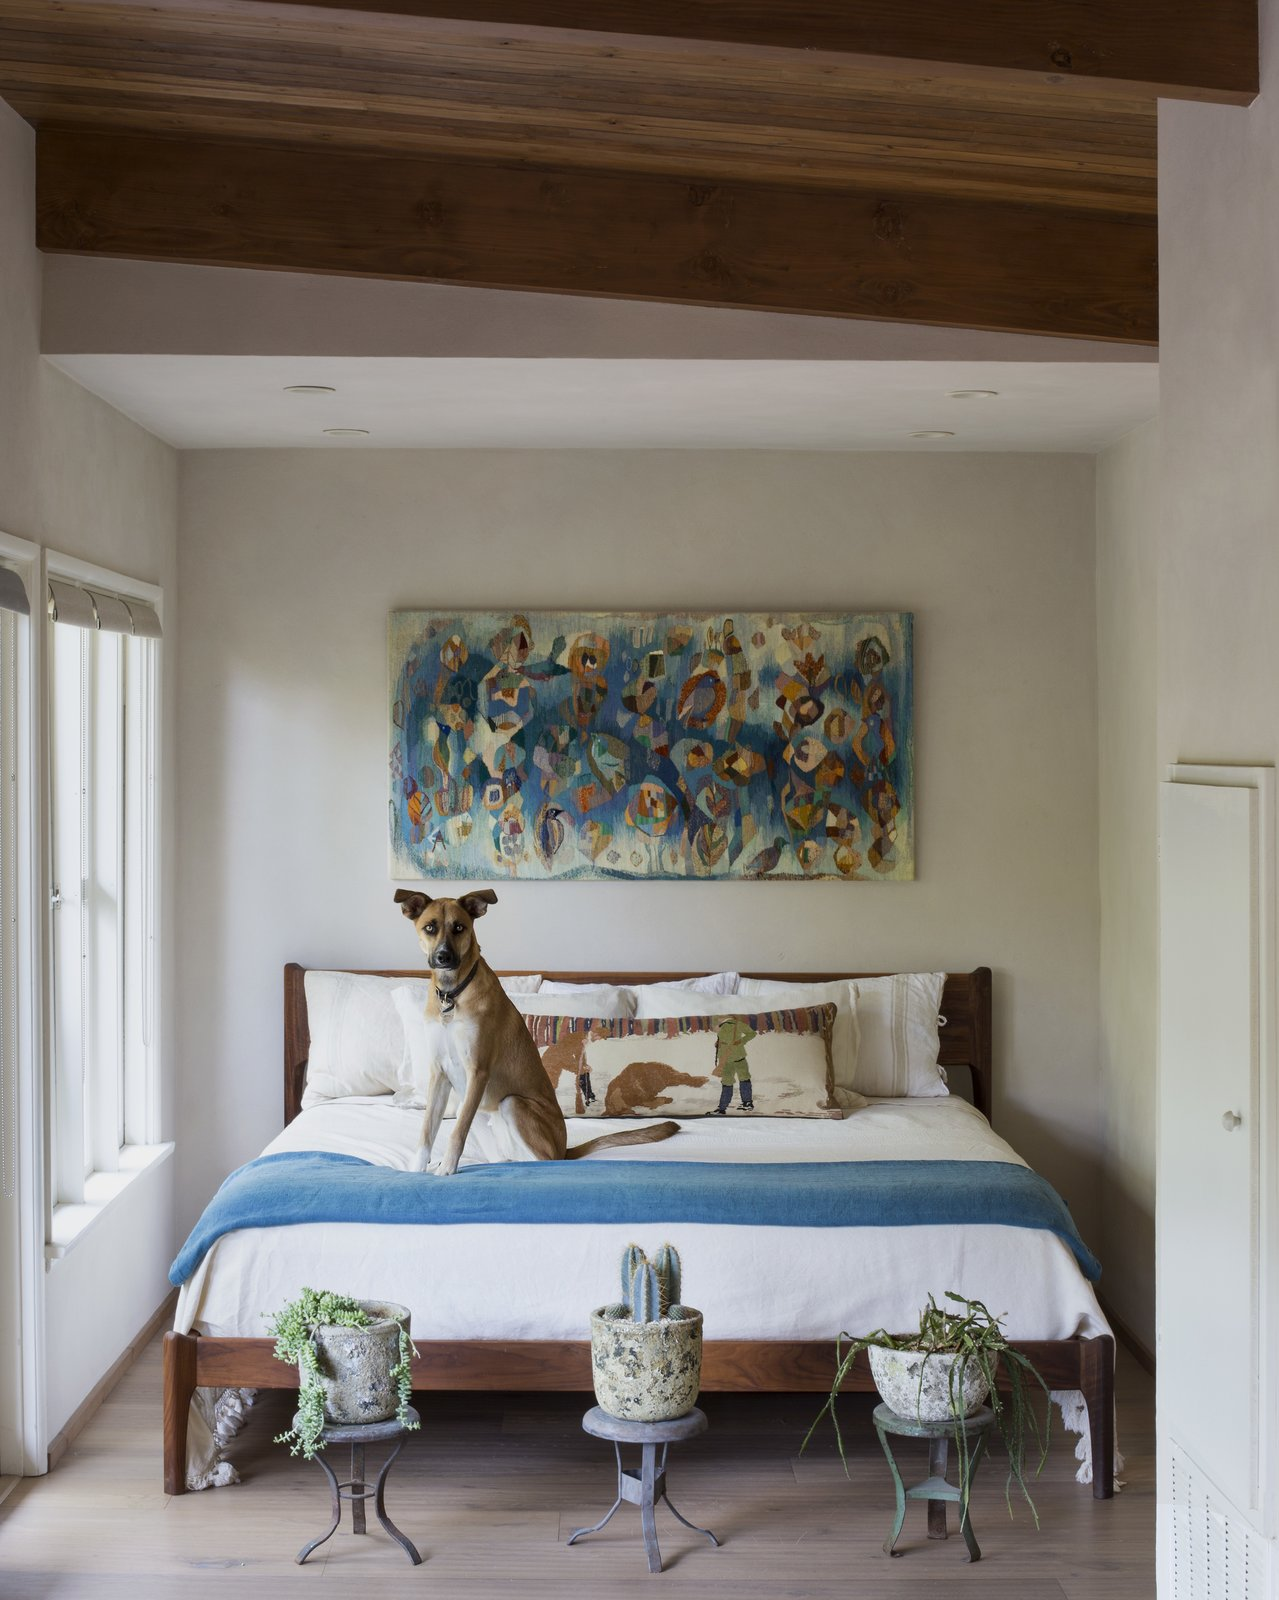 "Donut sits on a custom bed made by craftsman Pete Deeble. ""Above the bed I hung a vintage Evelyn Ackerman textile discovered on eBay,"" says Frank.  Bedrooms by Dwell from A Tiny House Remodel in a Bohemian L.A. Canyon"